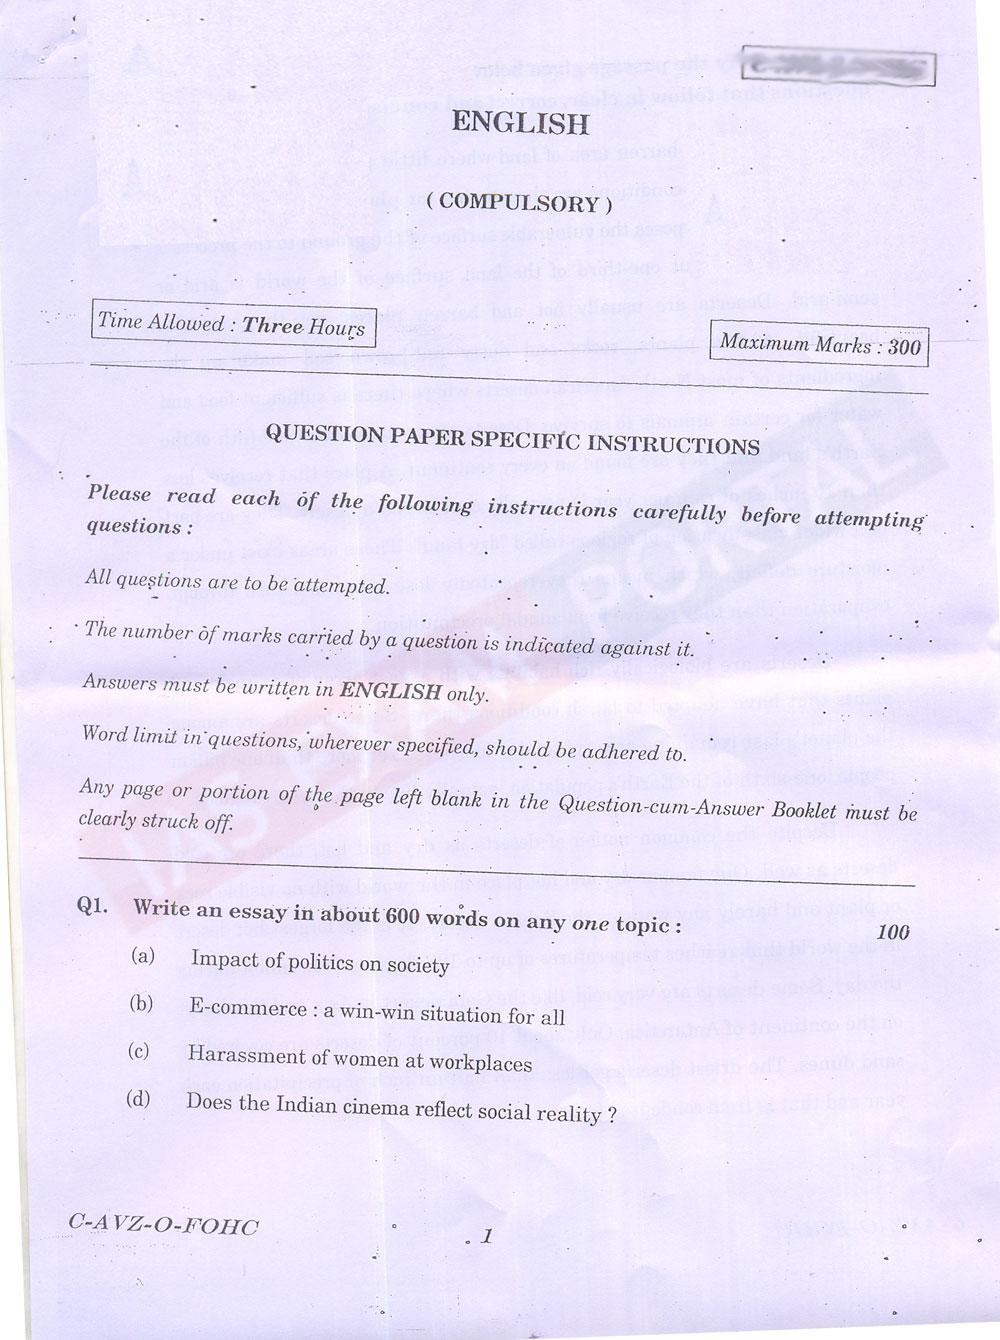 upsc ias mains english compulsory question paper click here to full essay paper